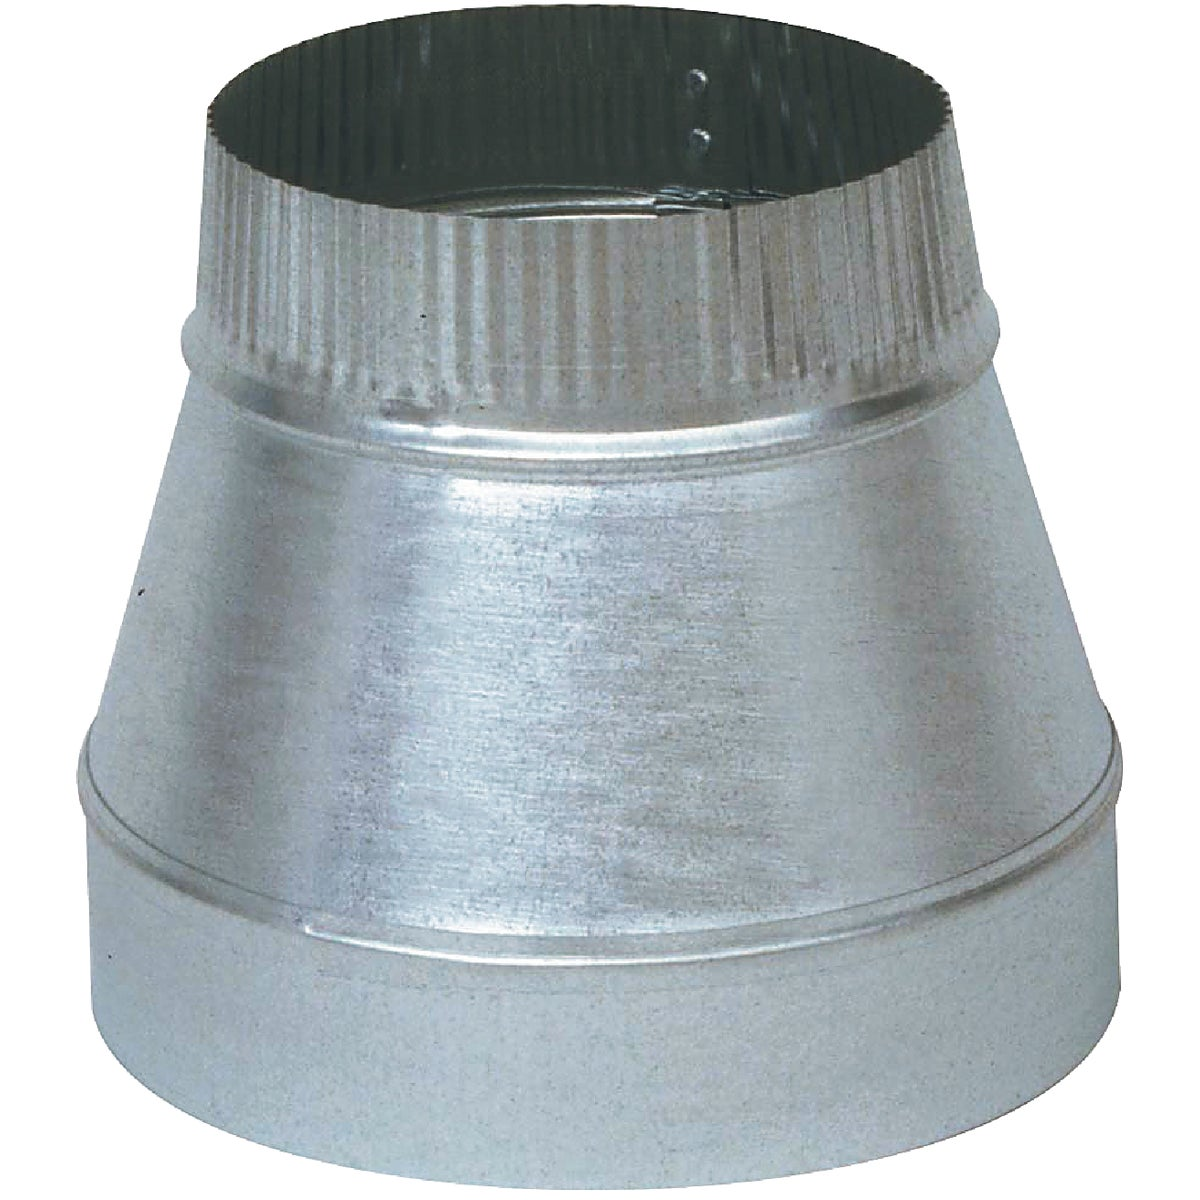 8X6 GALV REDUCER - GV0821 by Imperial Mfg Group